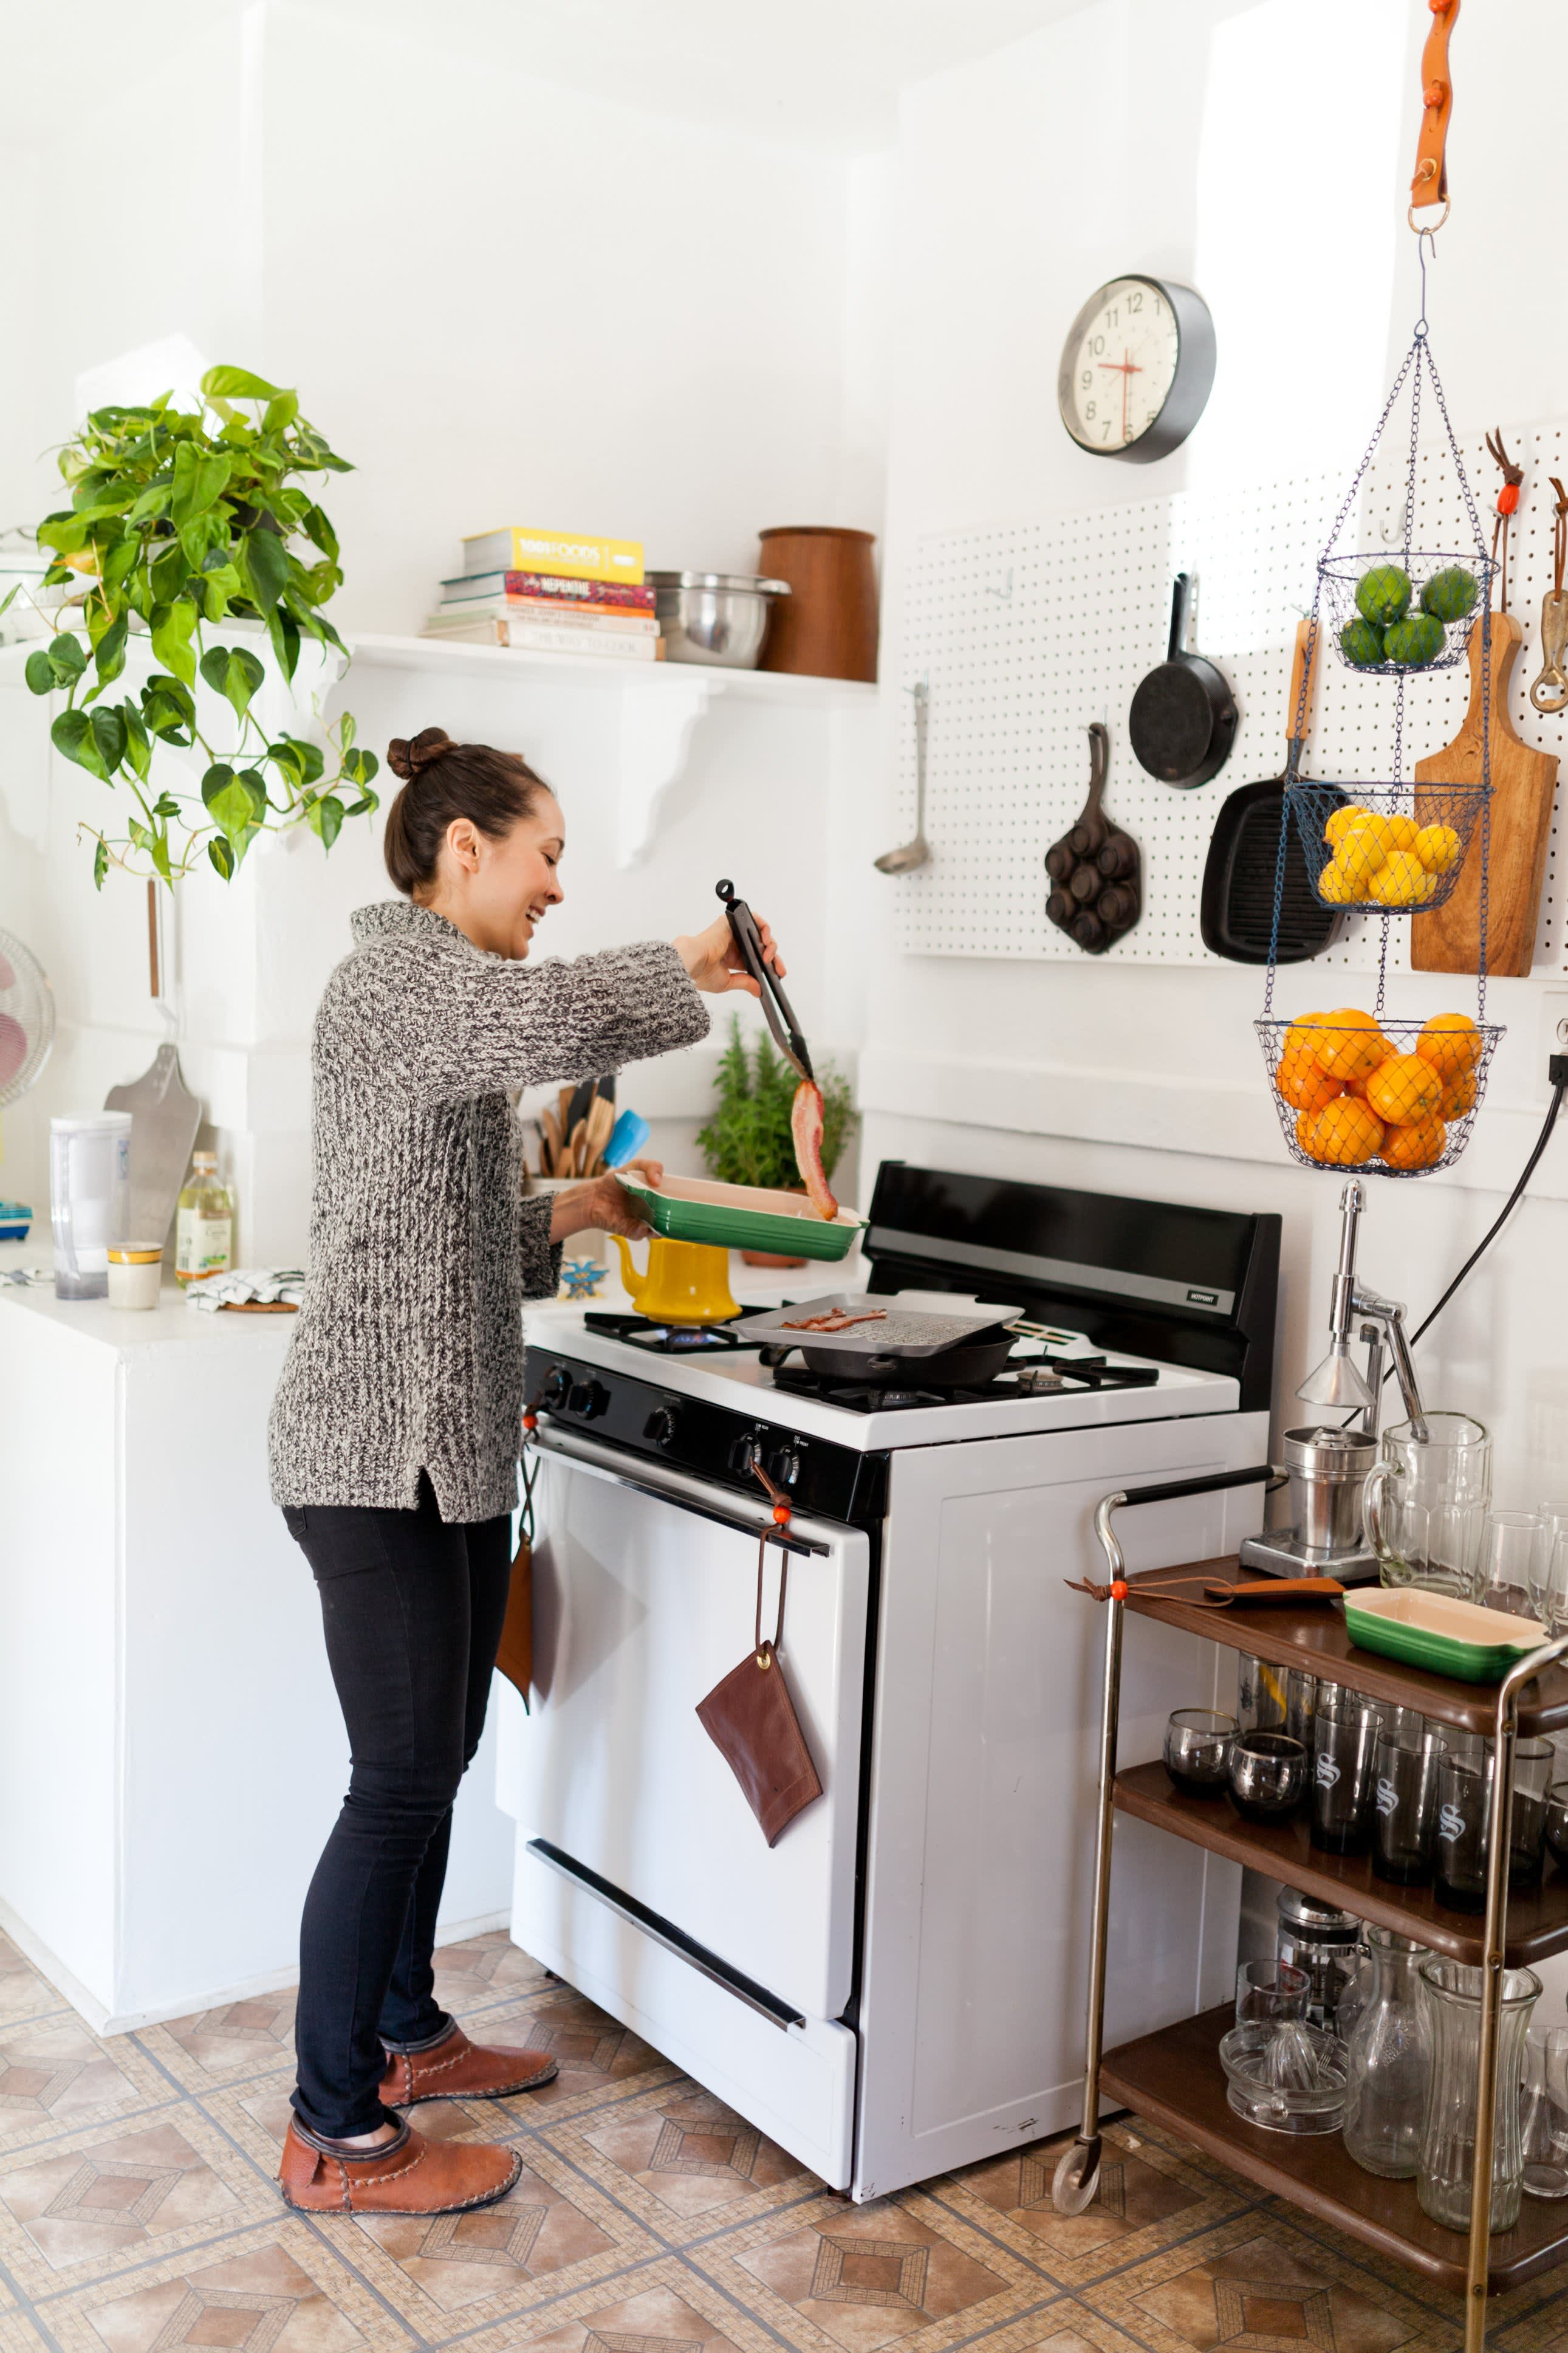 15 Ingenious Ways to Create a More Organized Kitchen: gallery image 7